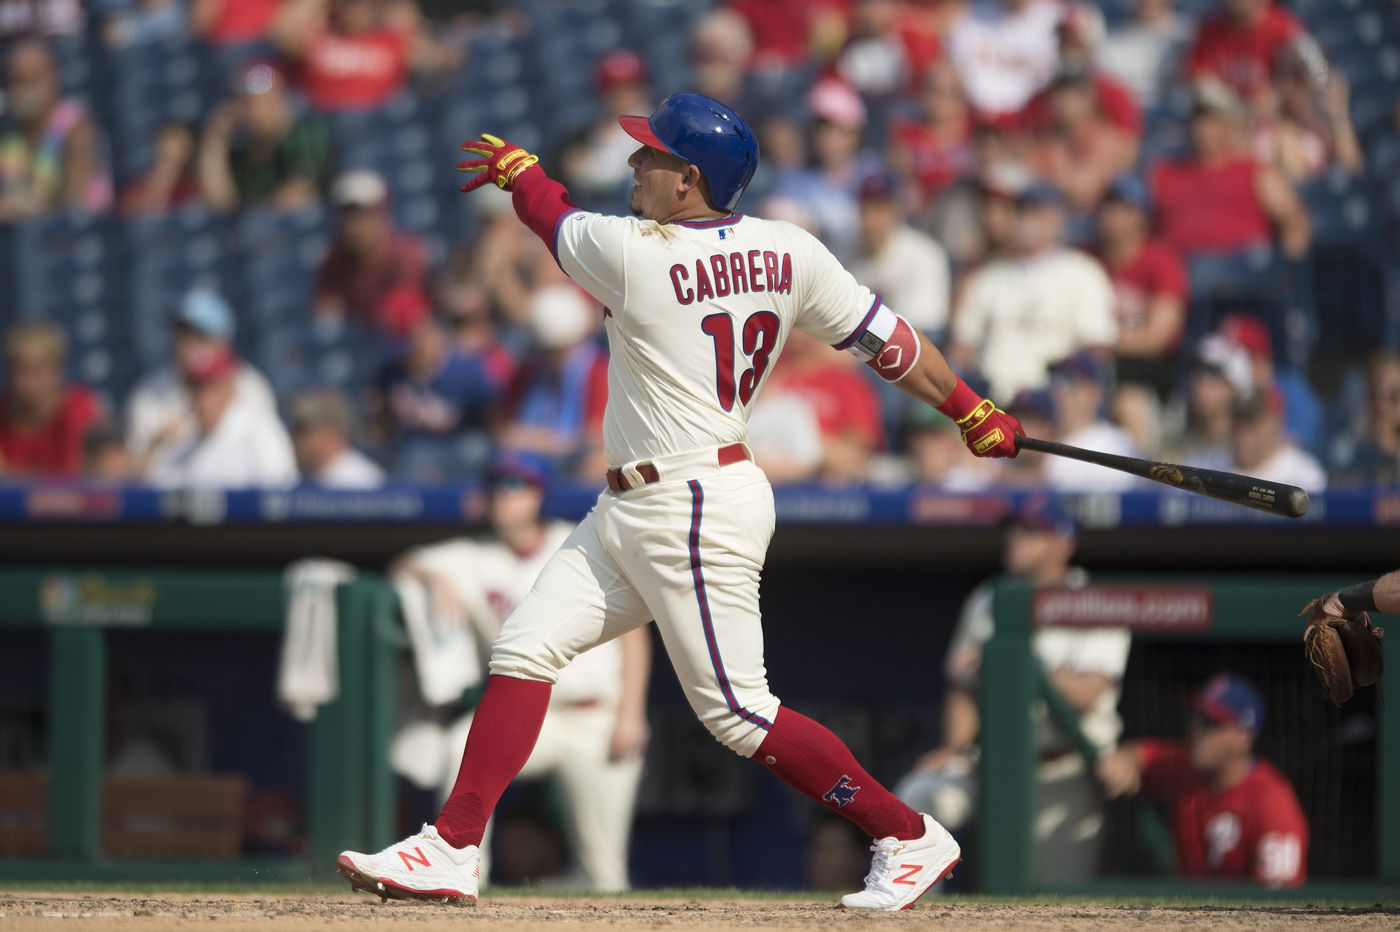 Asdrubal Cabrera lifts Phillies to fifth straight win with late homer